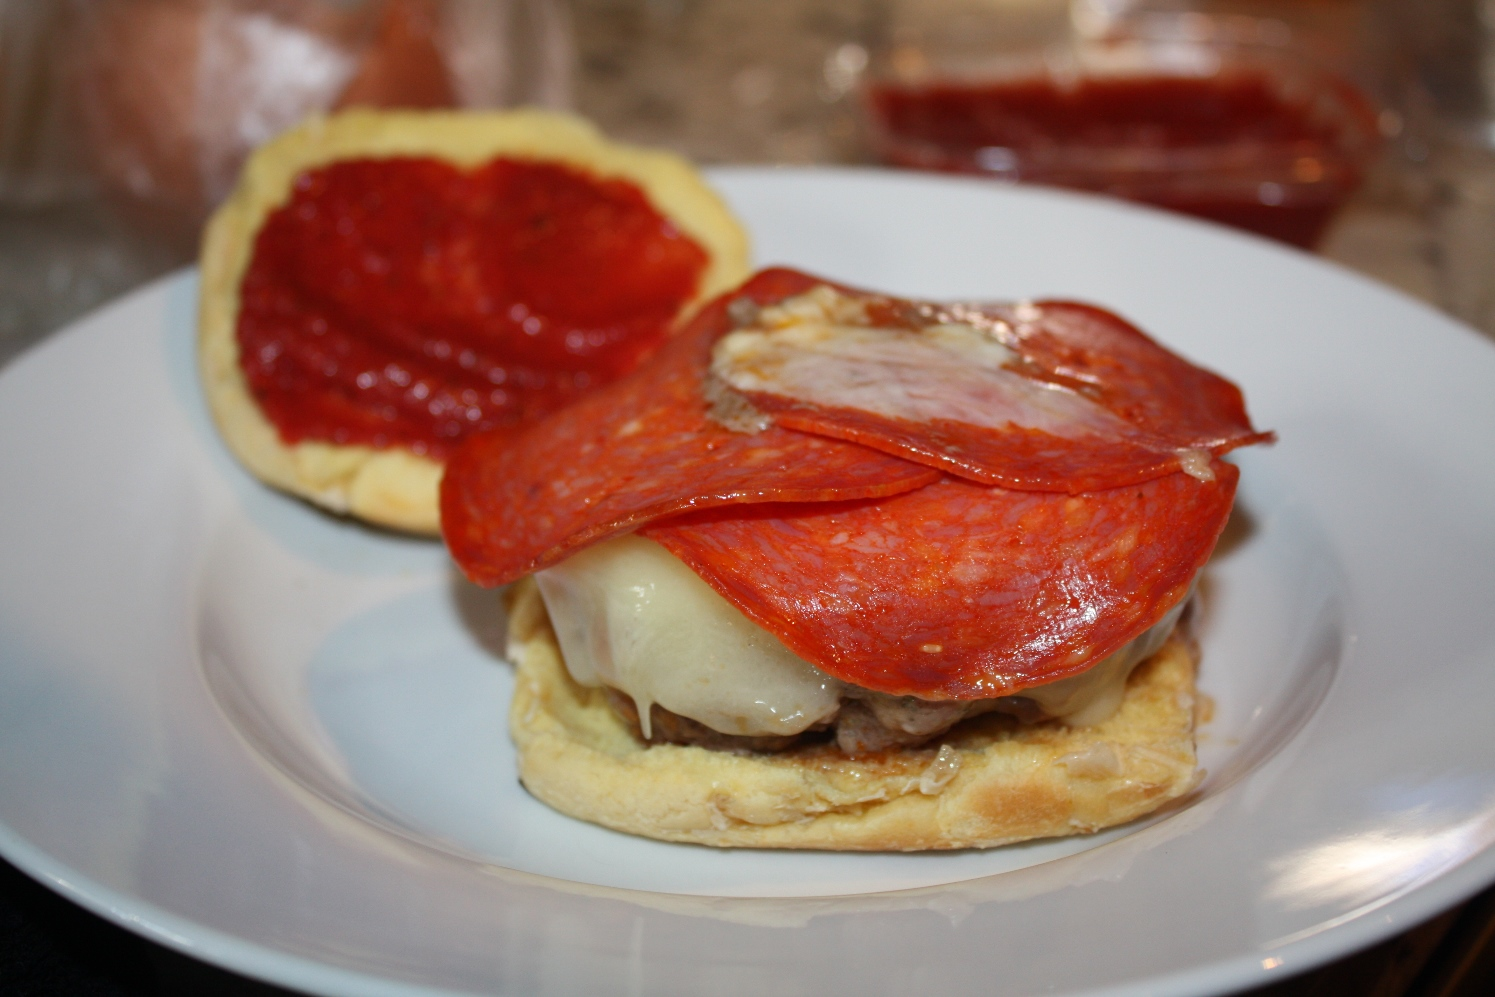 PW's pepperoni pizza burgers